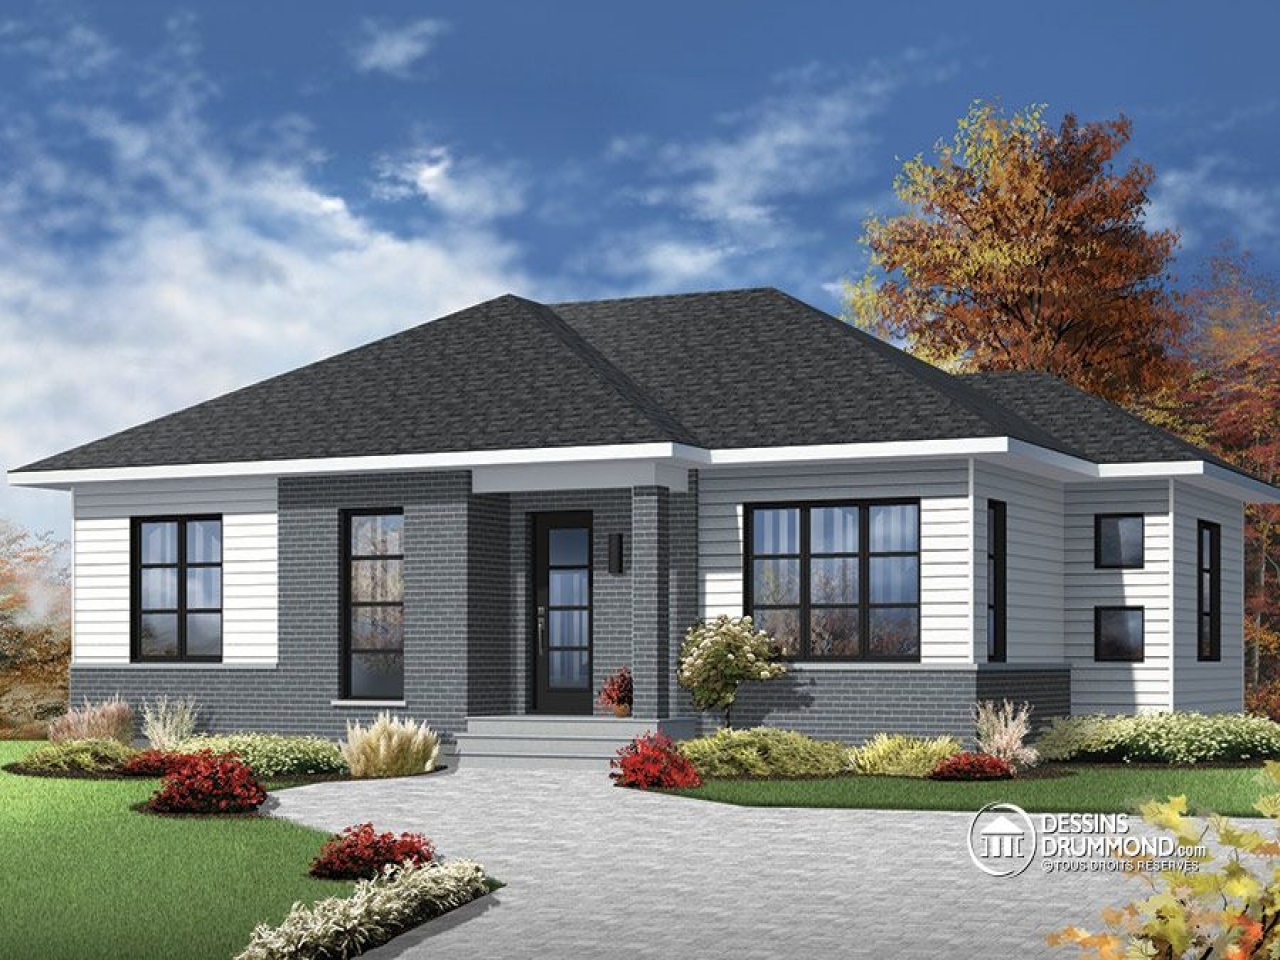 Large bungalow house plans bungalow house plans for Bungalow house plans philippines